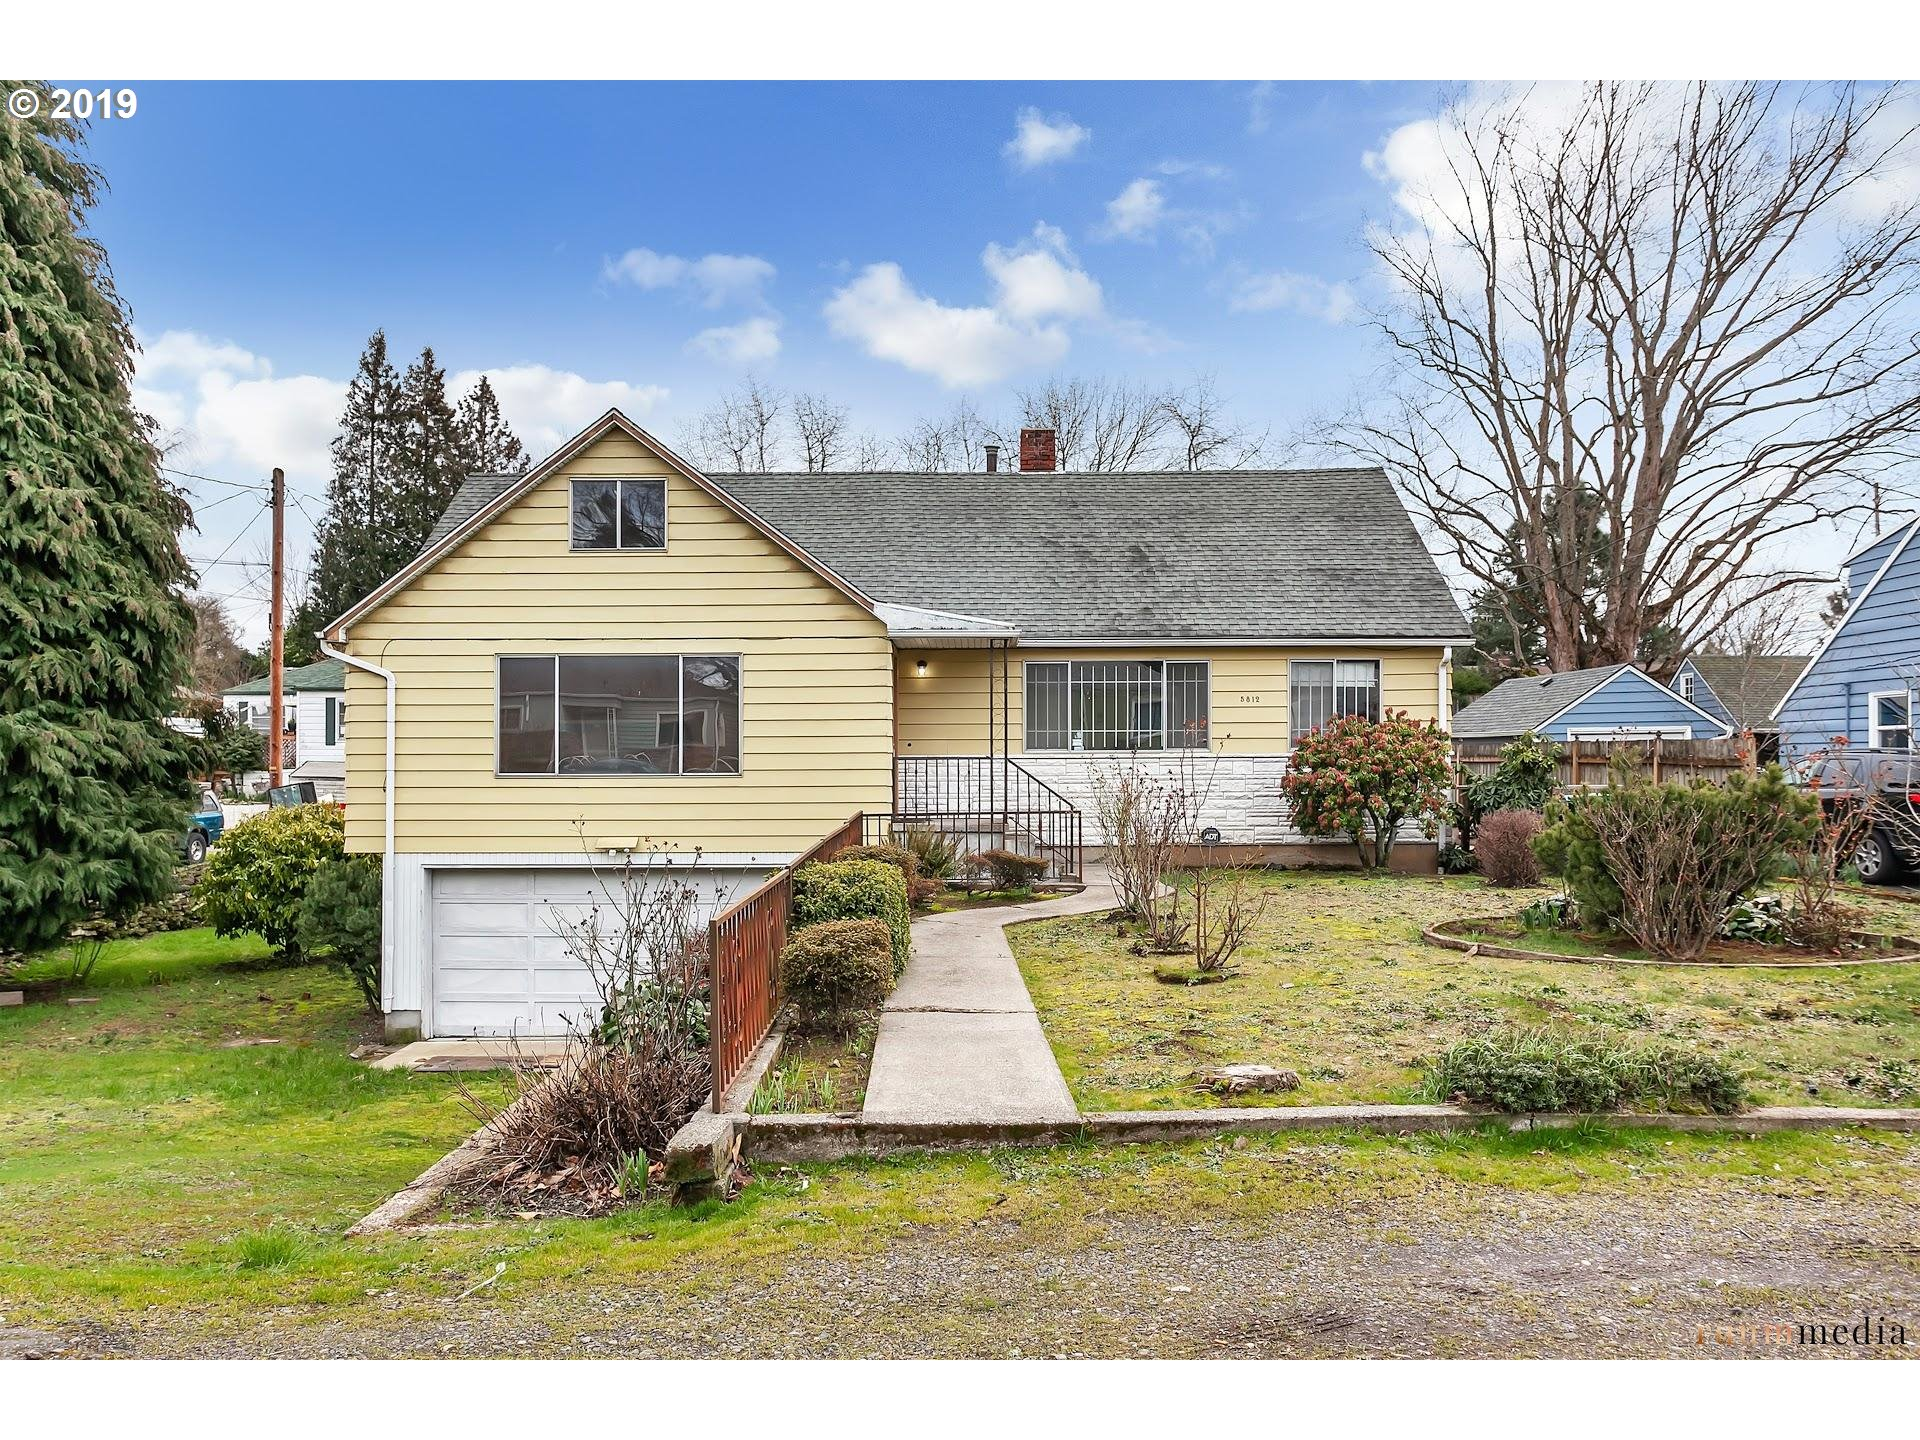 5812 NE SIMPSON ST Portland Home Listings - Keller Williams Sunset Corridor Portland Real Estate